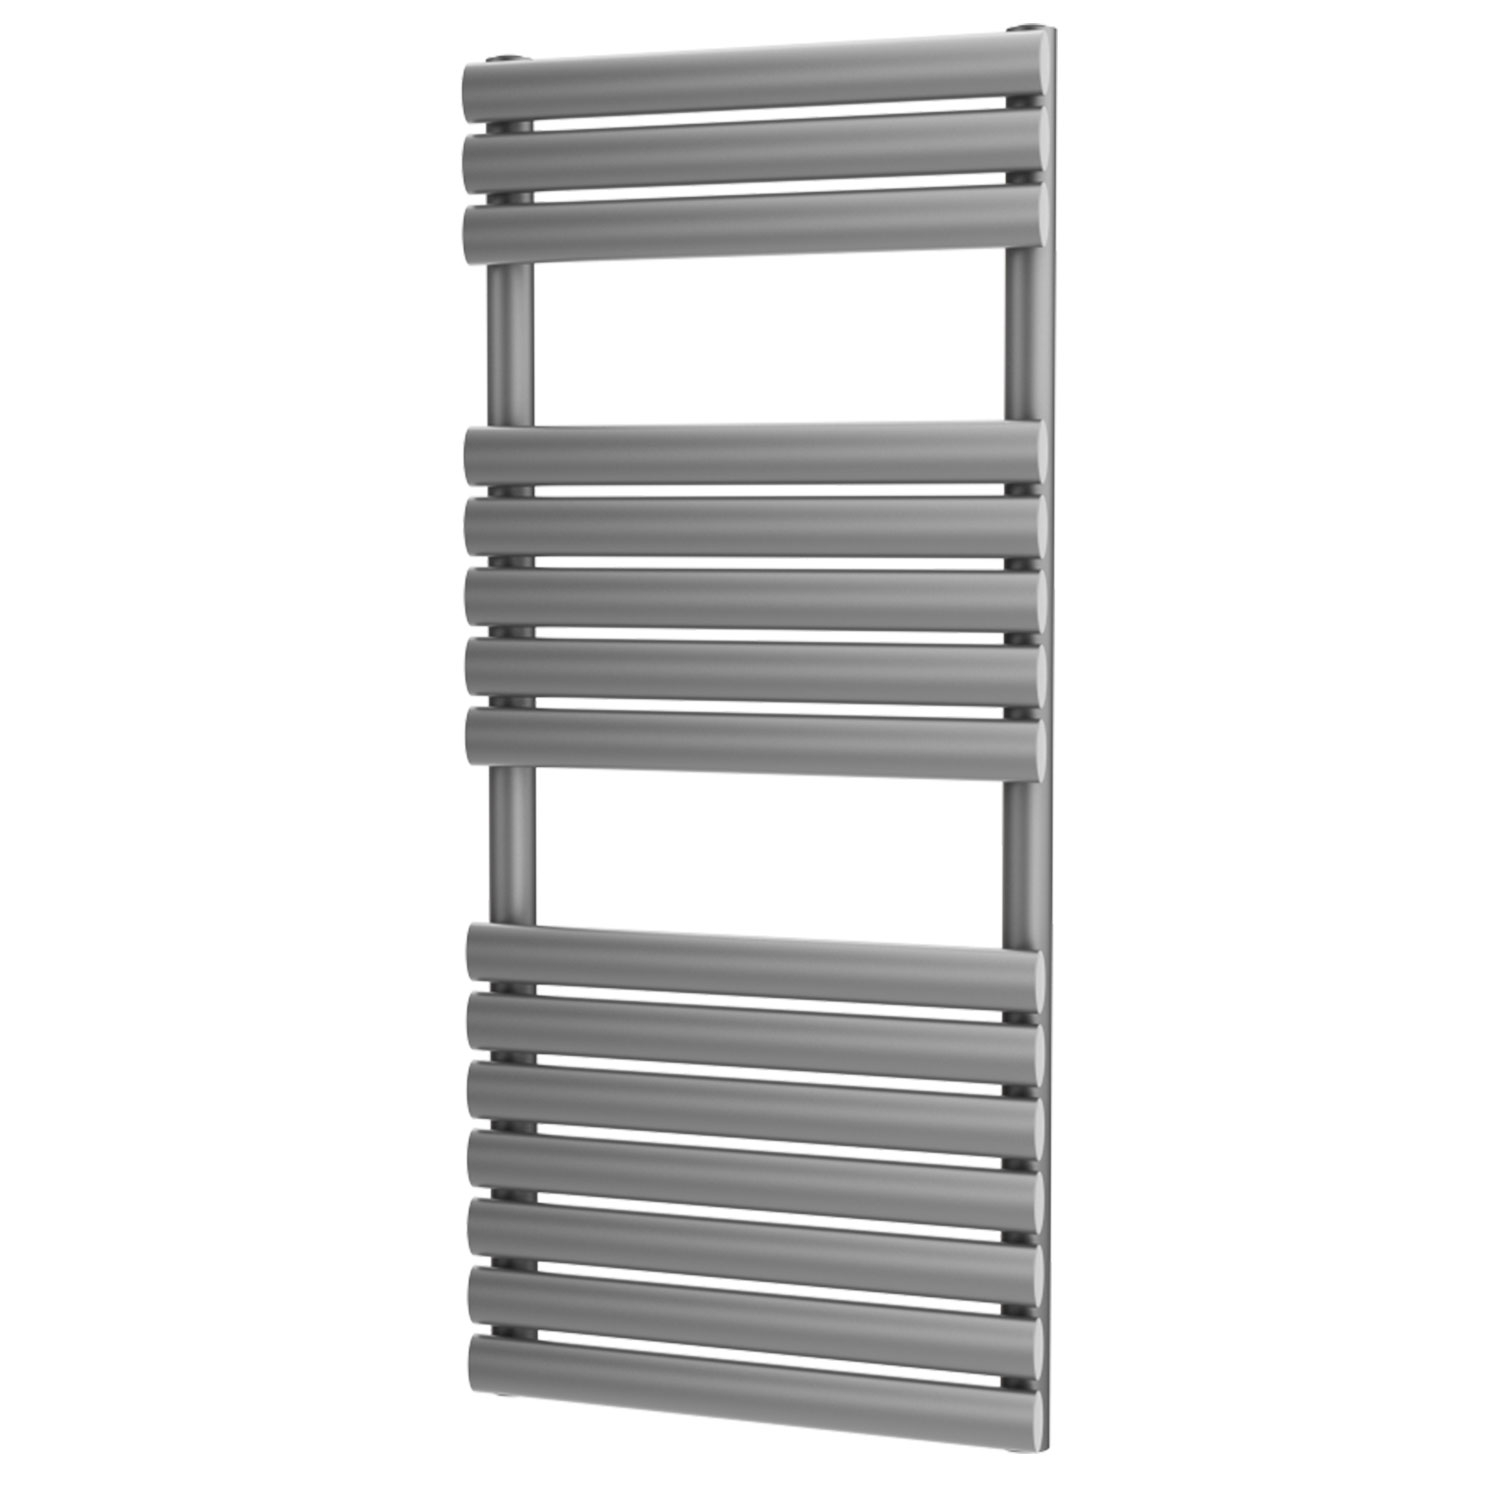 MaxHeat Saltash Designer Towel Rail, 1120mm High x 500mm Wide, Silver